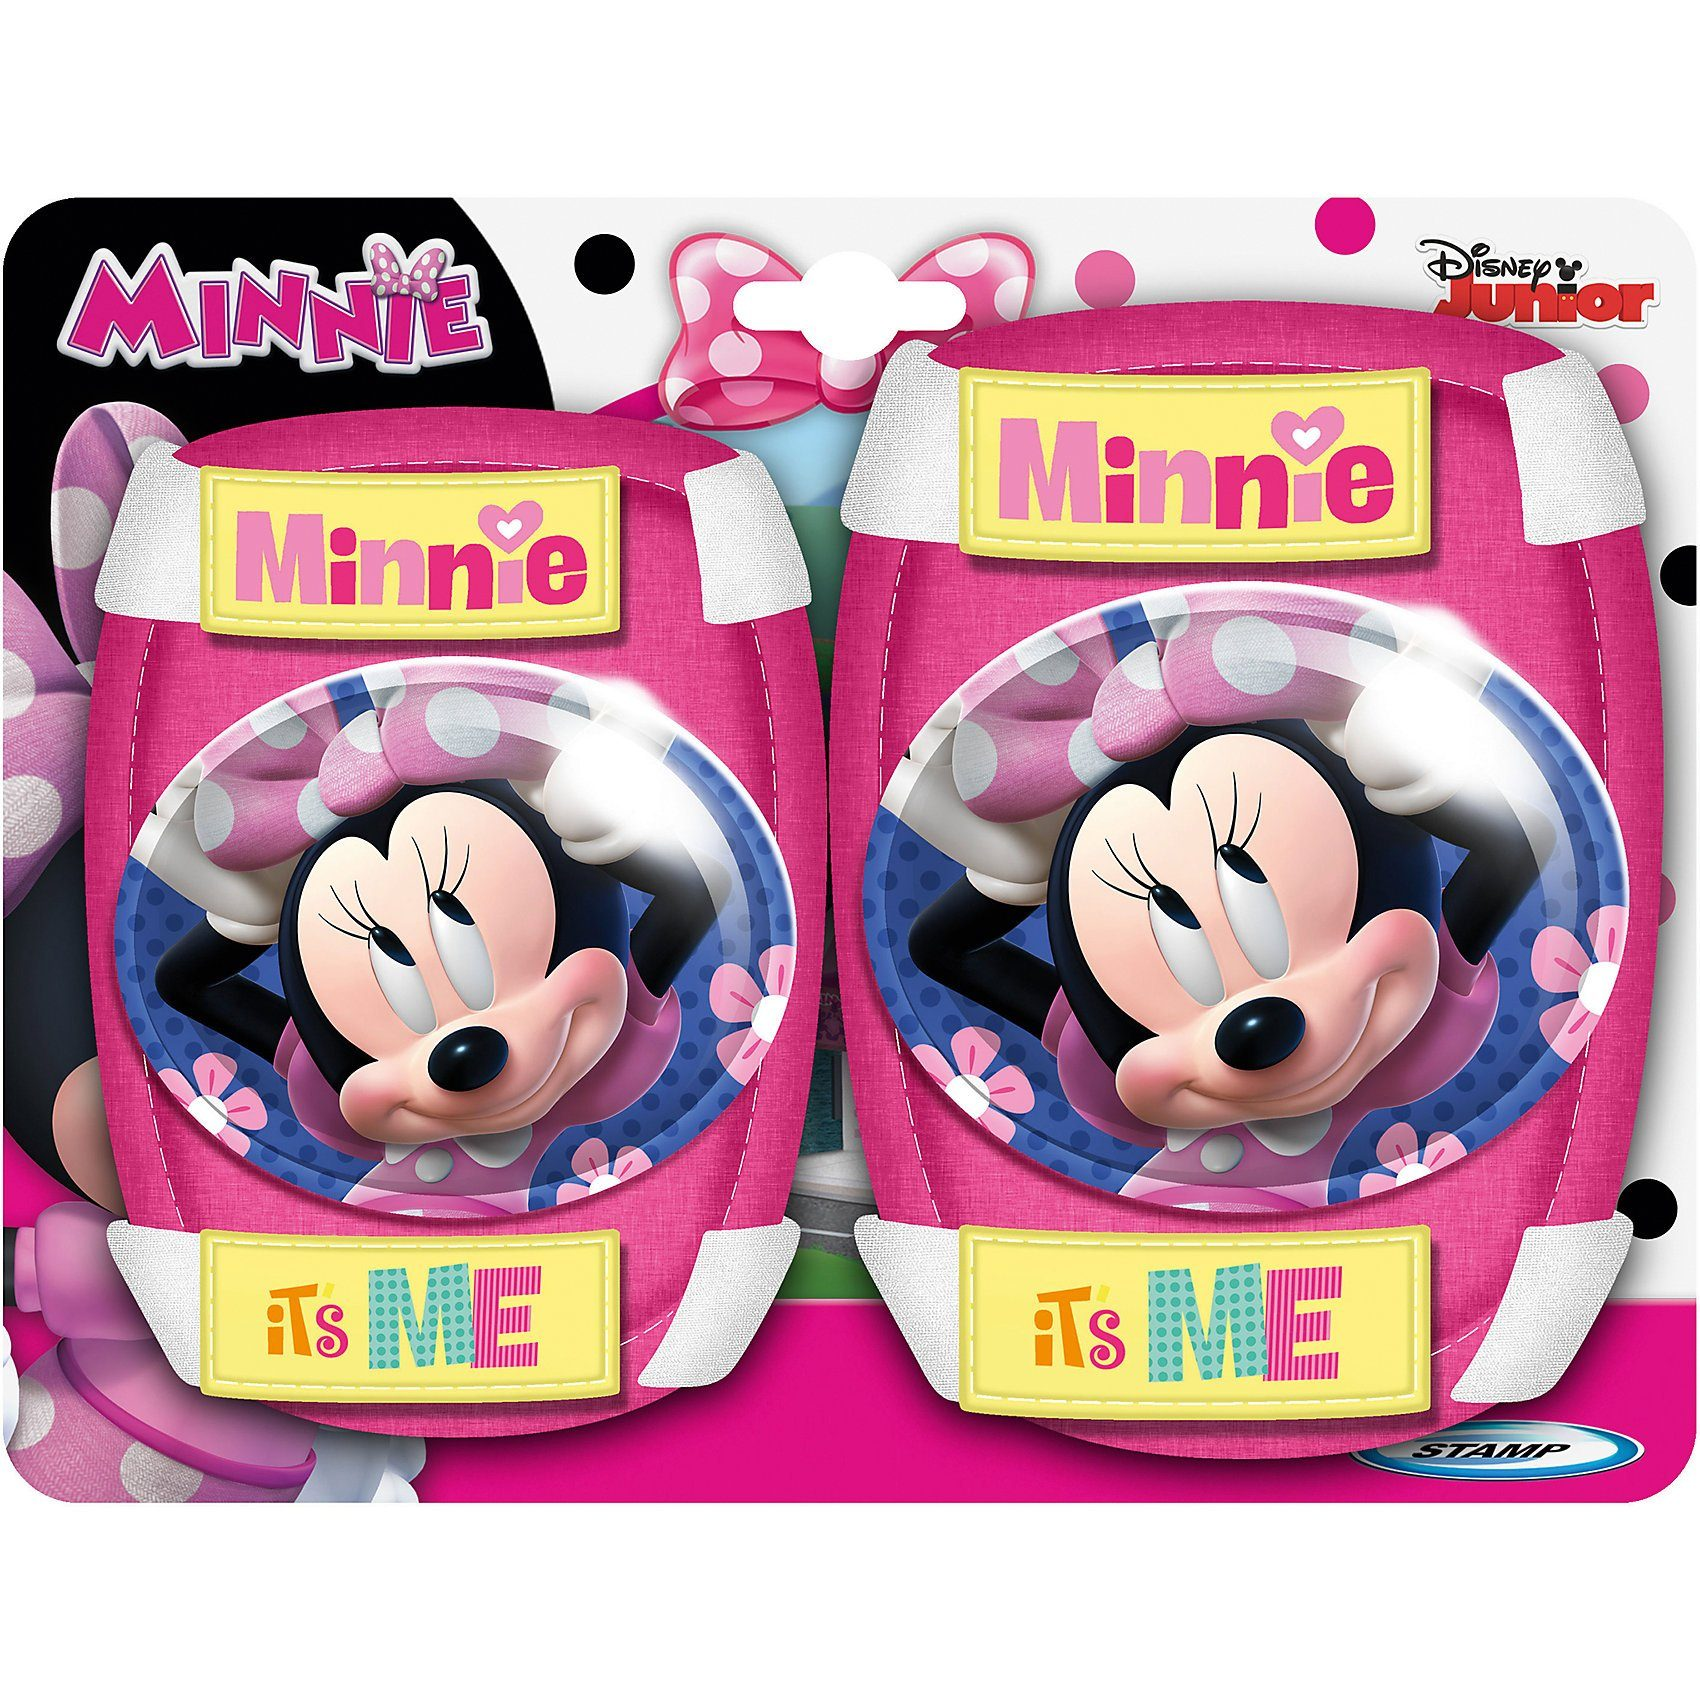 Stamp Minnie Mouse Sicherheitspads